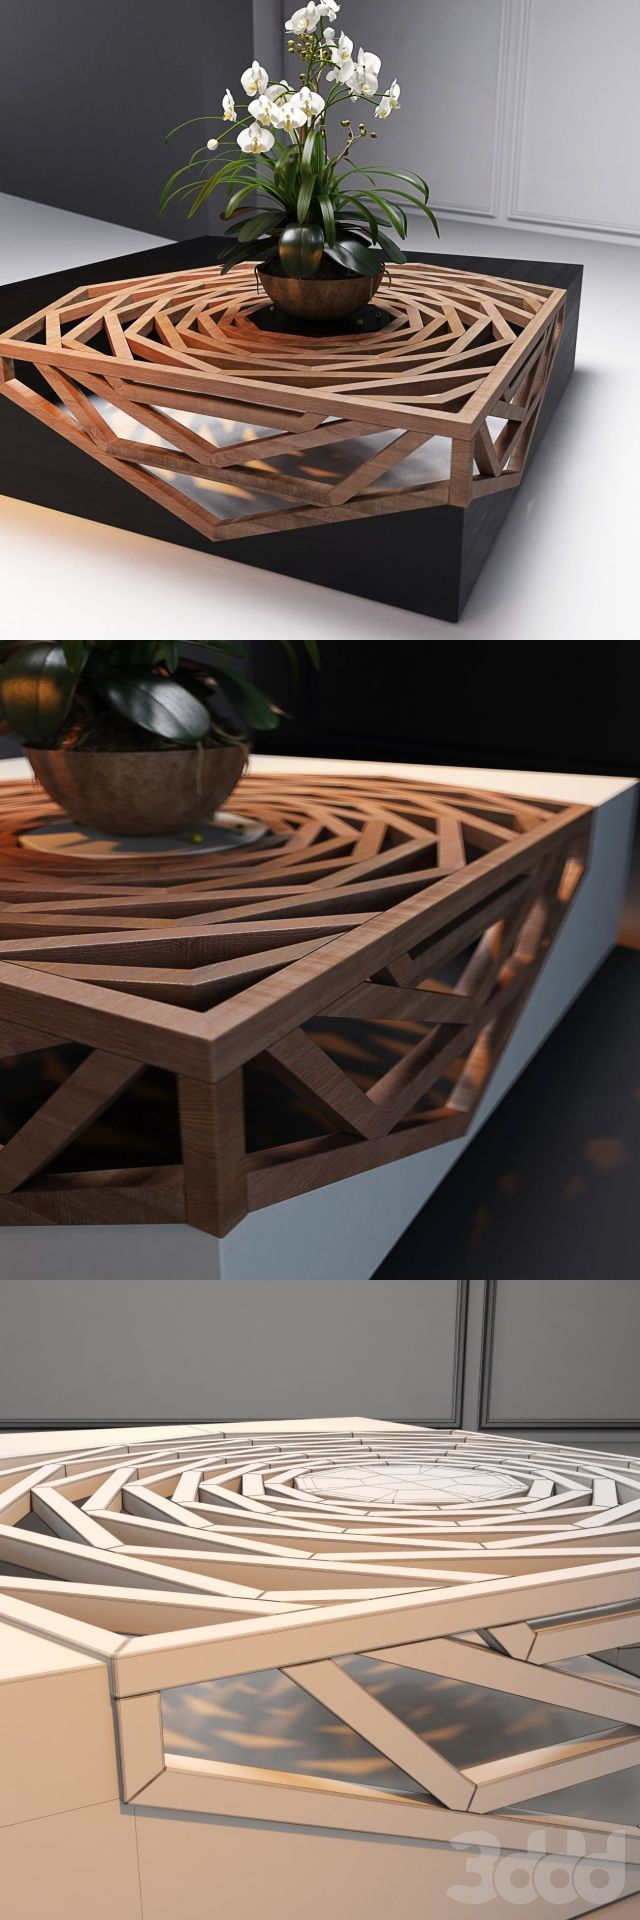 Gorgeous Design Wood Coffee Table - 25+ Best Ideas About Wood Coffee Tables On Pinterest Wood Tables